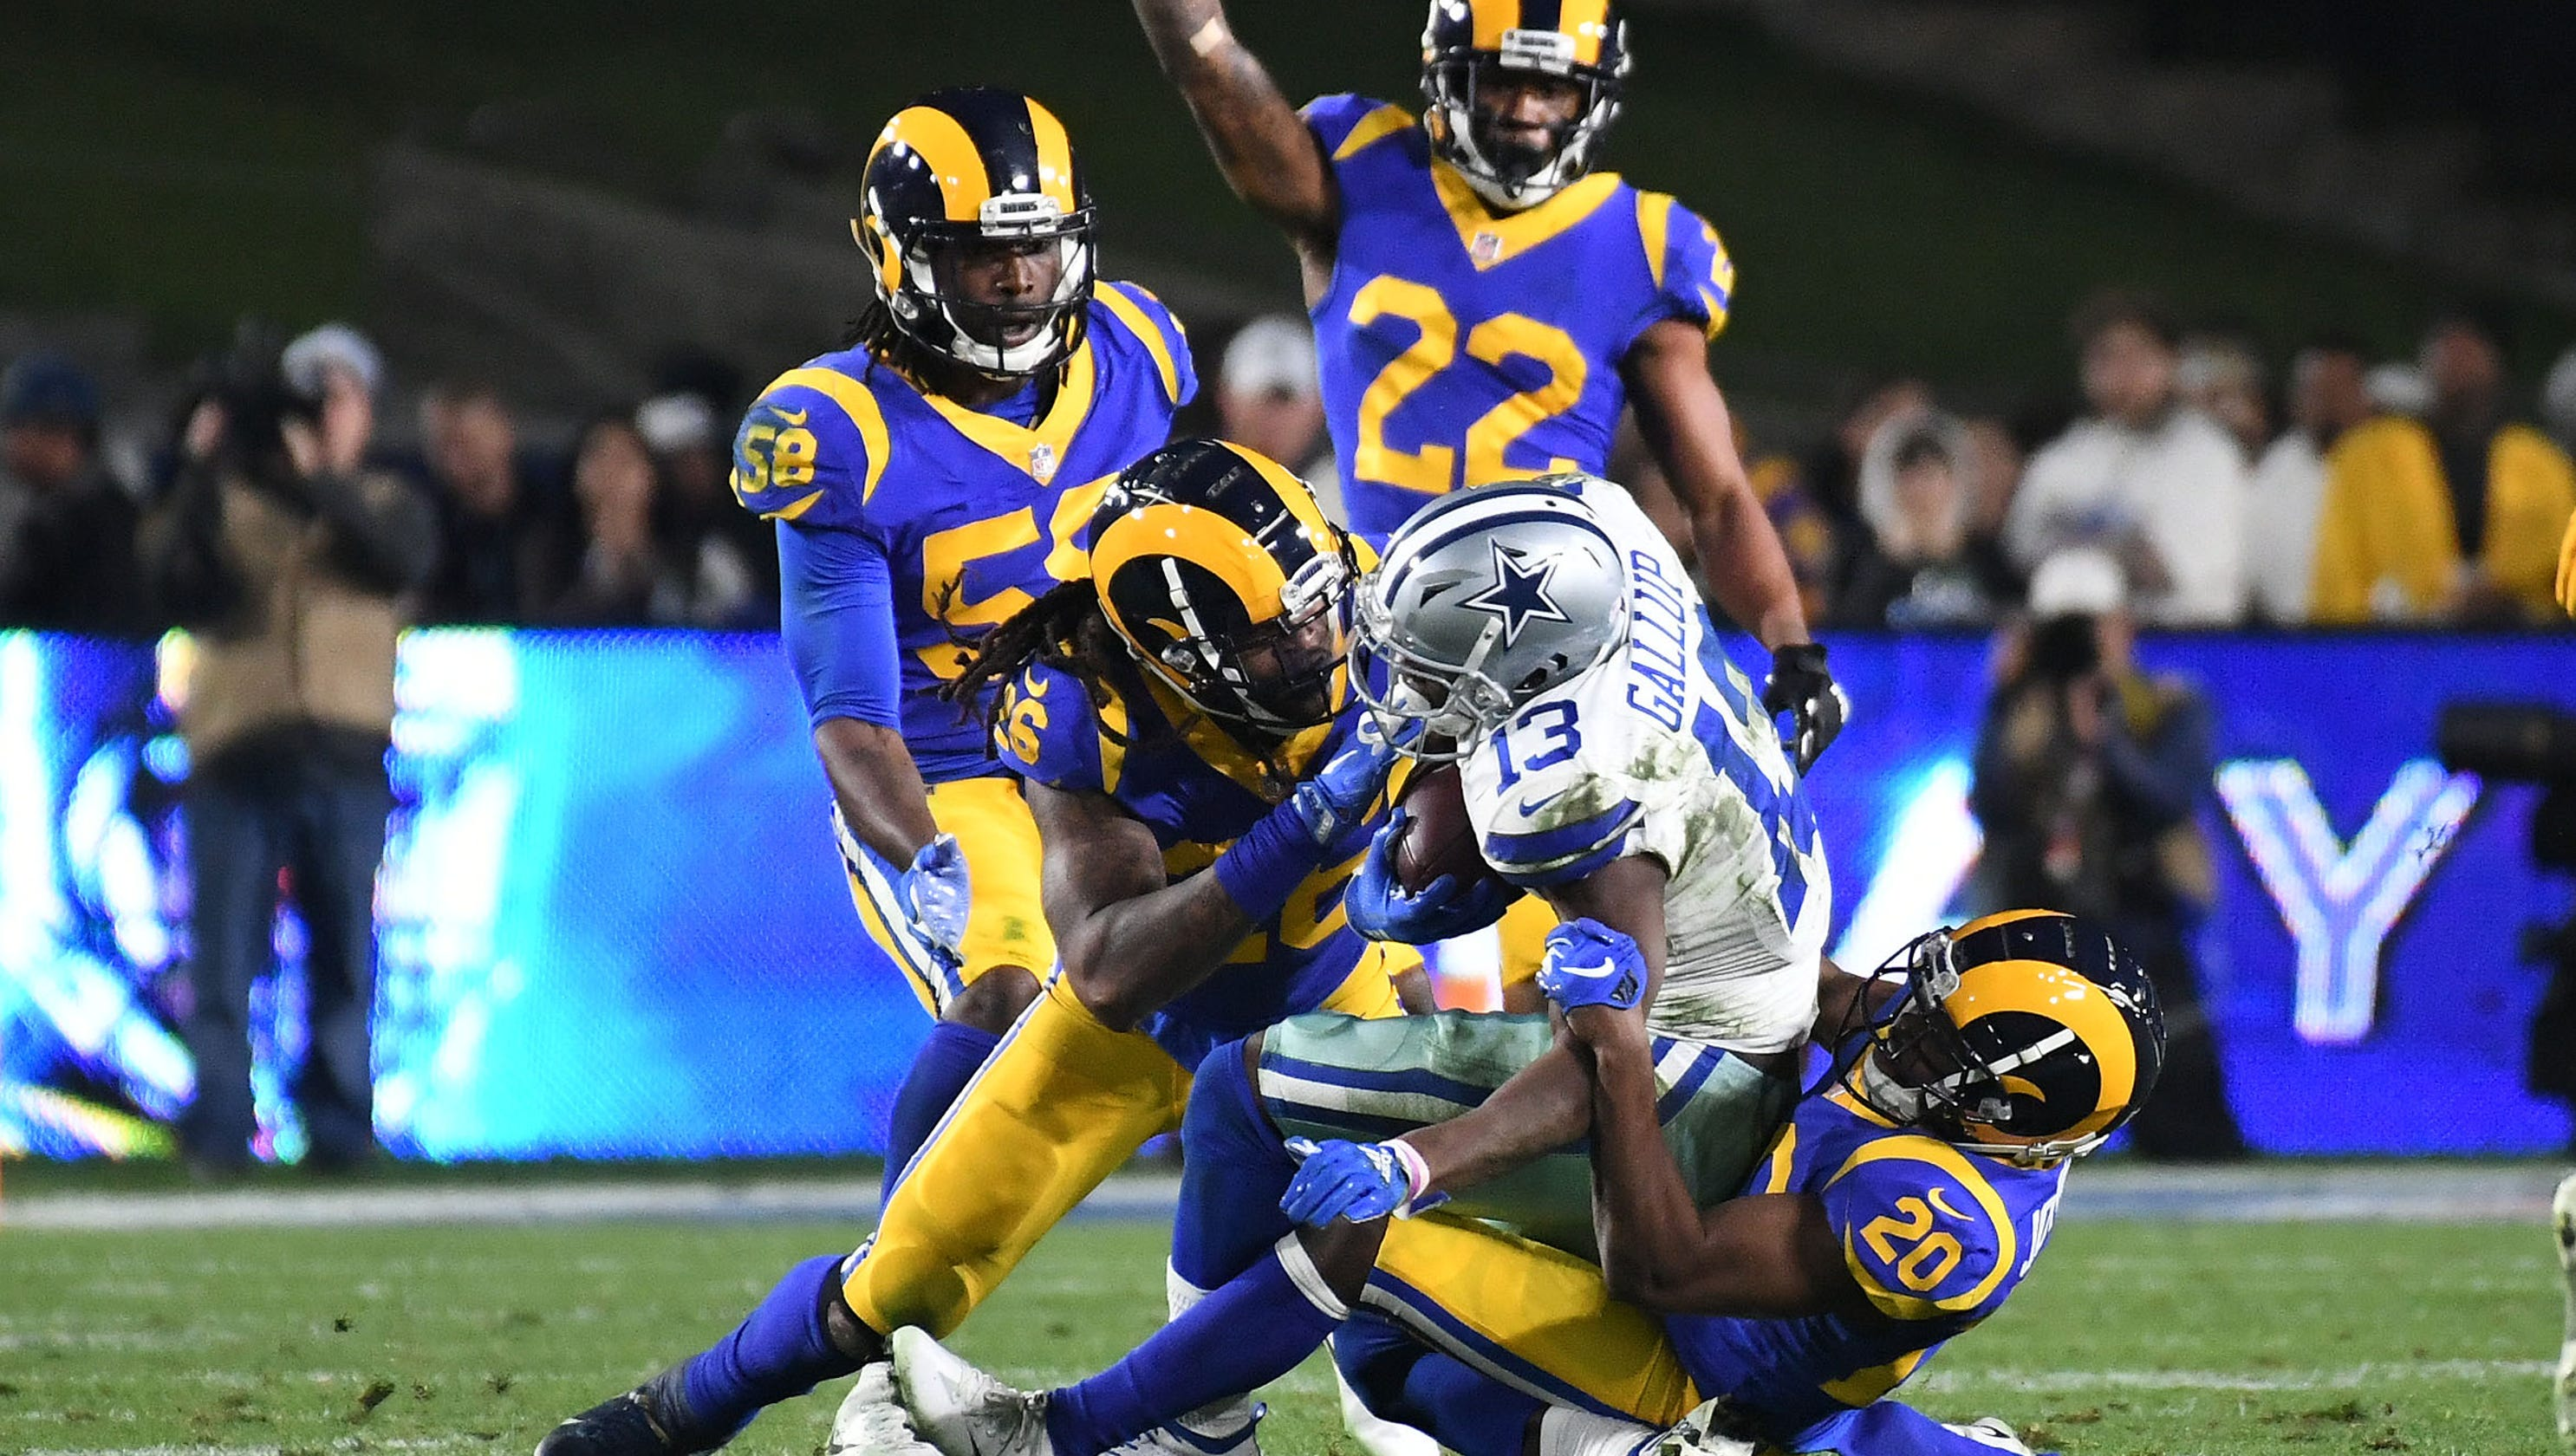 NFL playoffs 2019: Best of divisional-round games